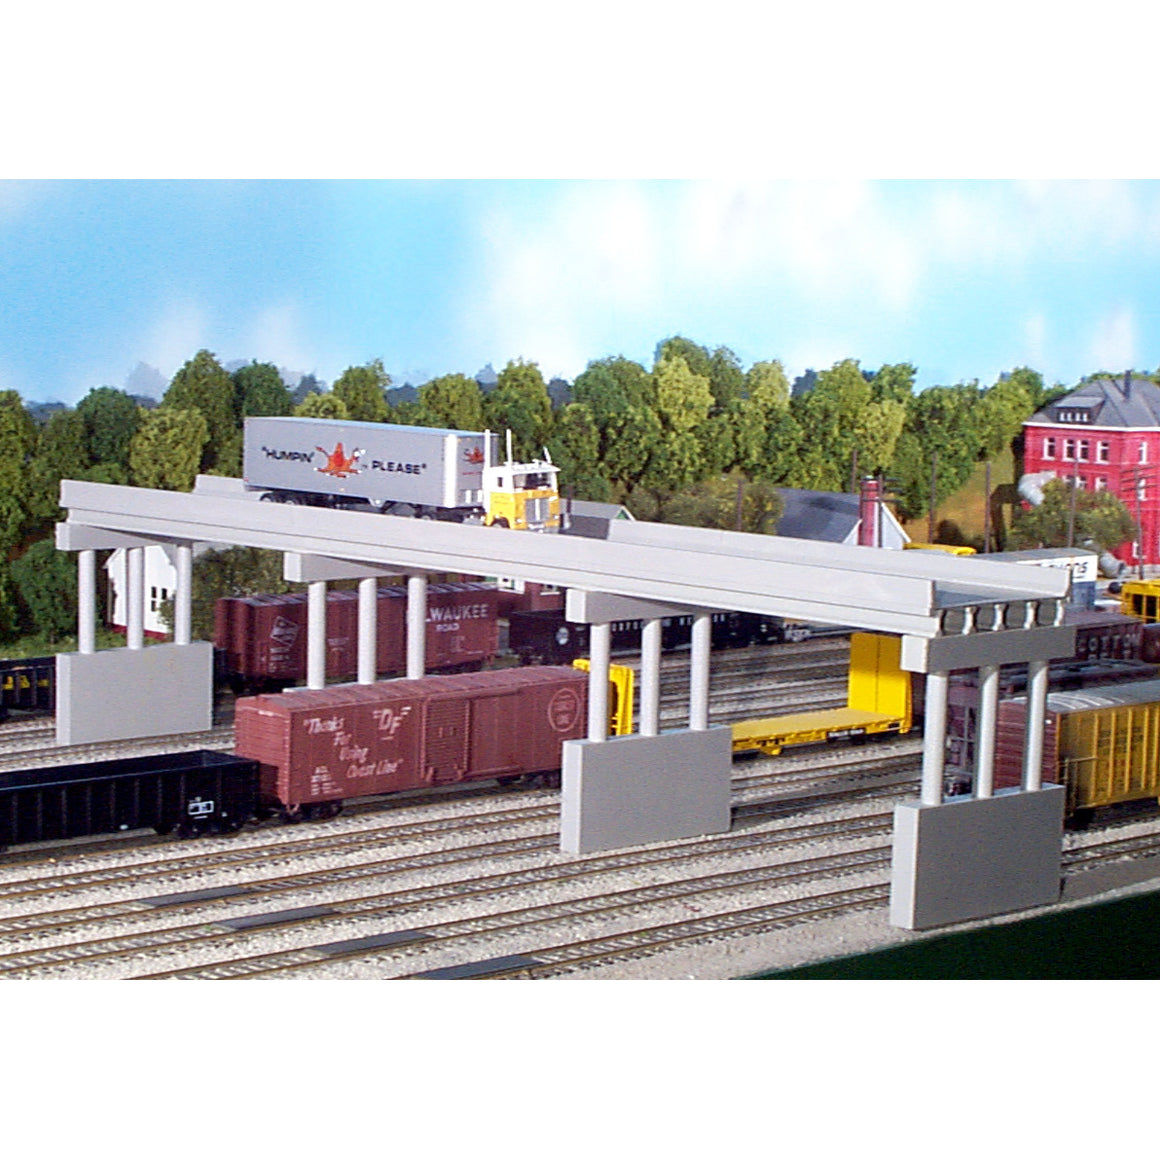 HO Scale: Modern Highway Overpass - Kit